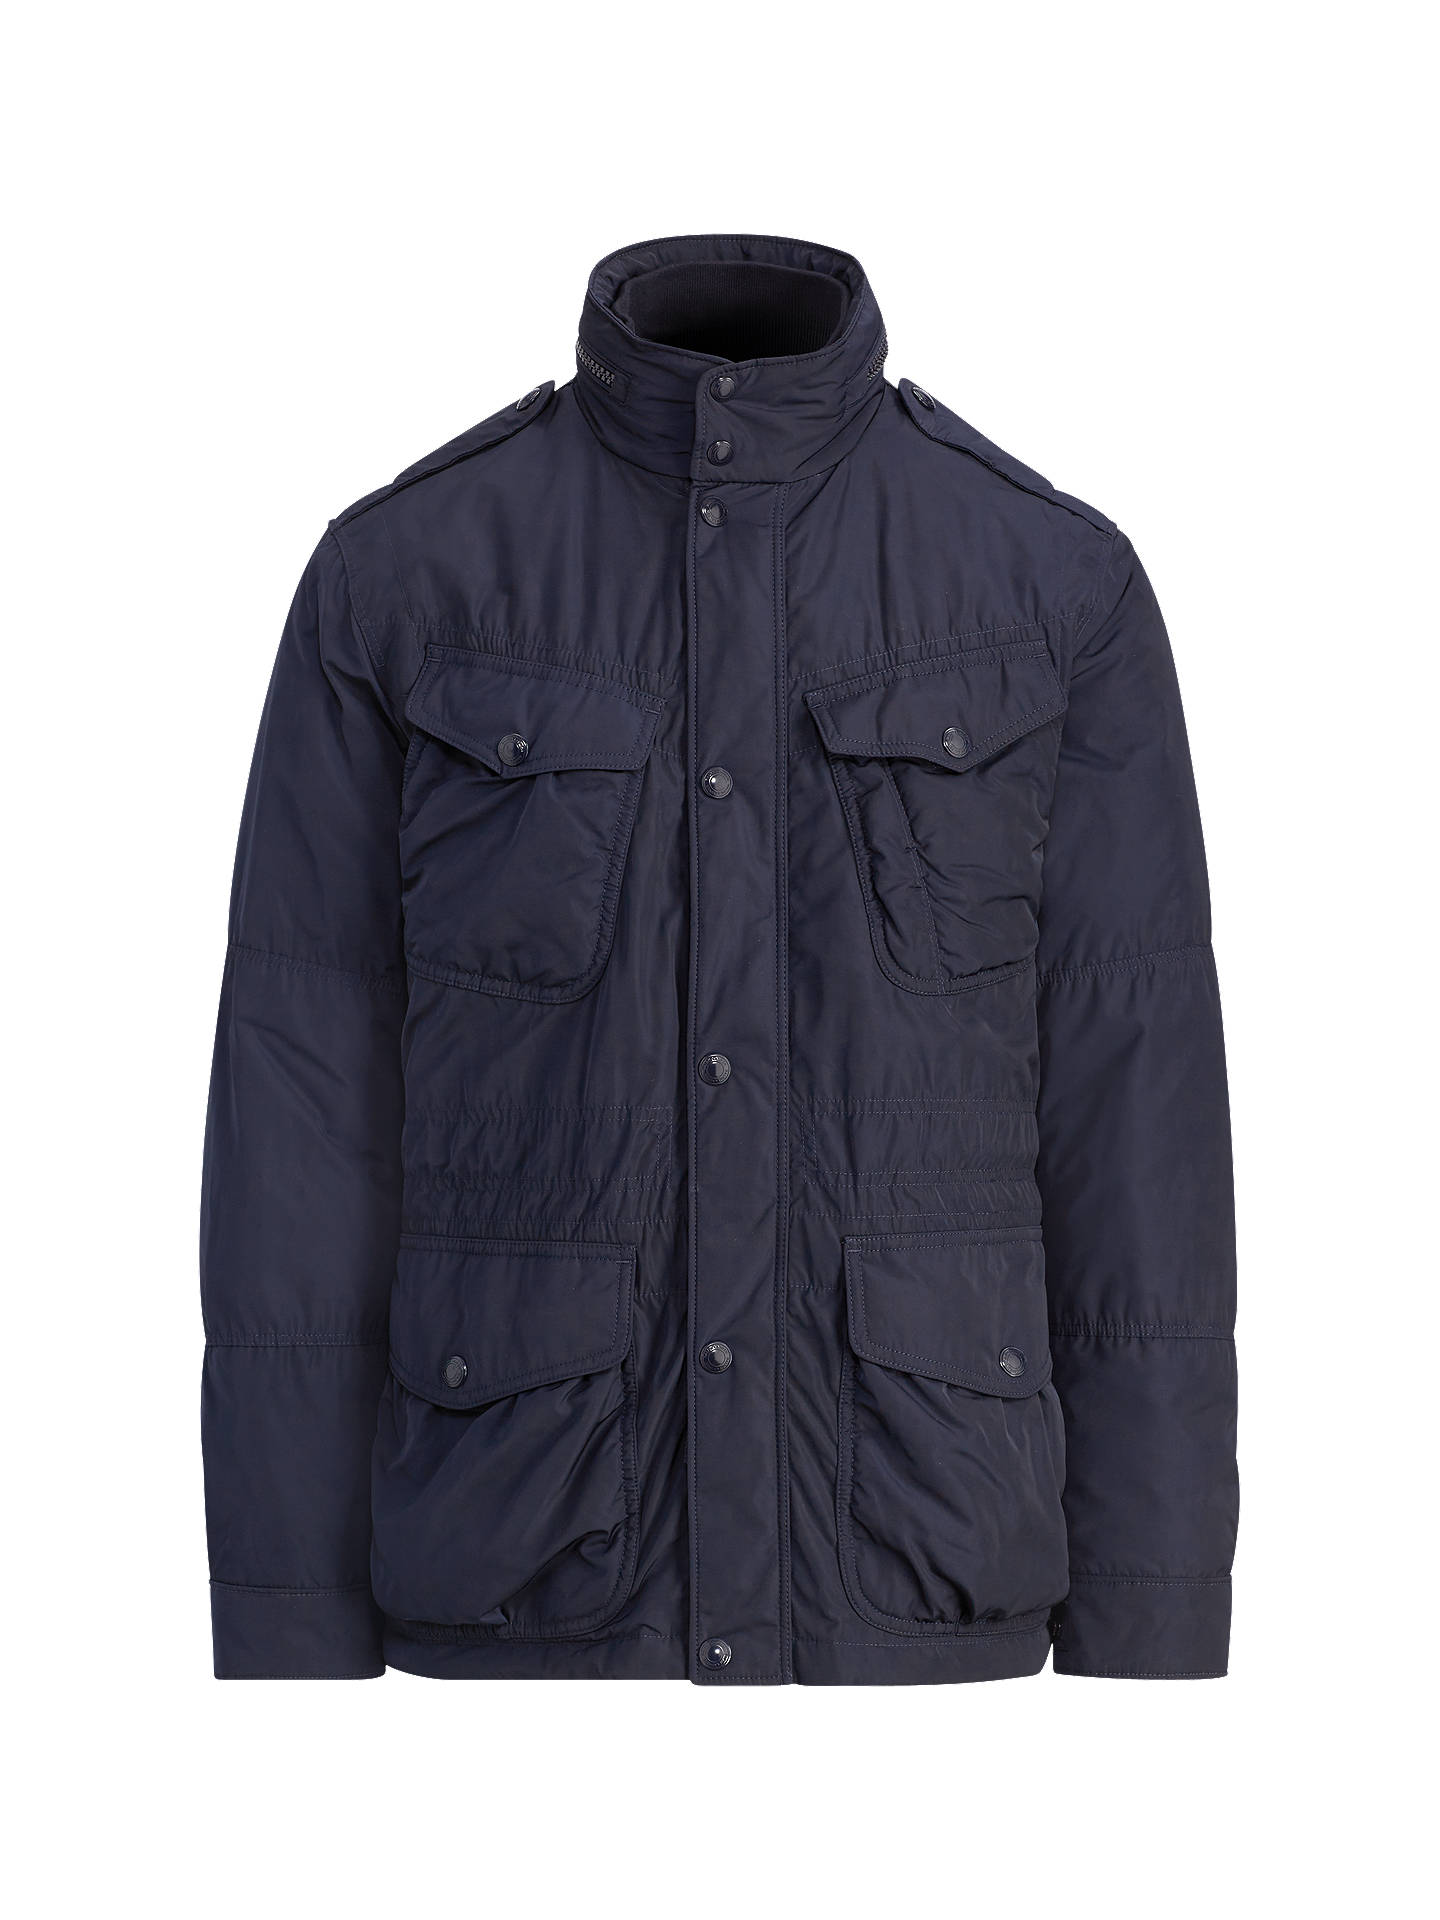 BuyPolo Ralph Lauren Battle Jacket, Aviator Navy, M Online at johnlewis.com